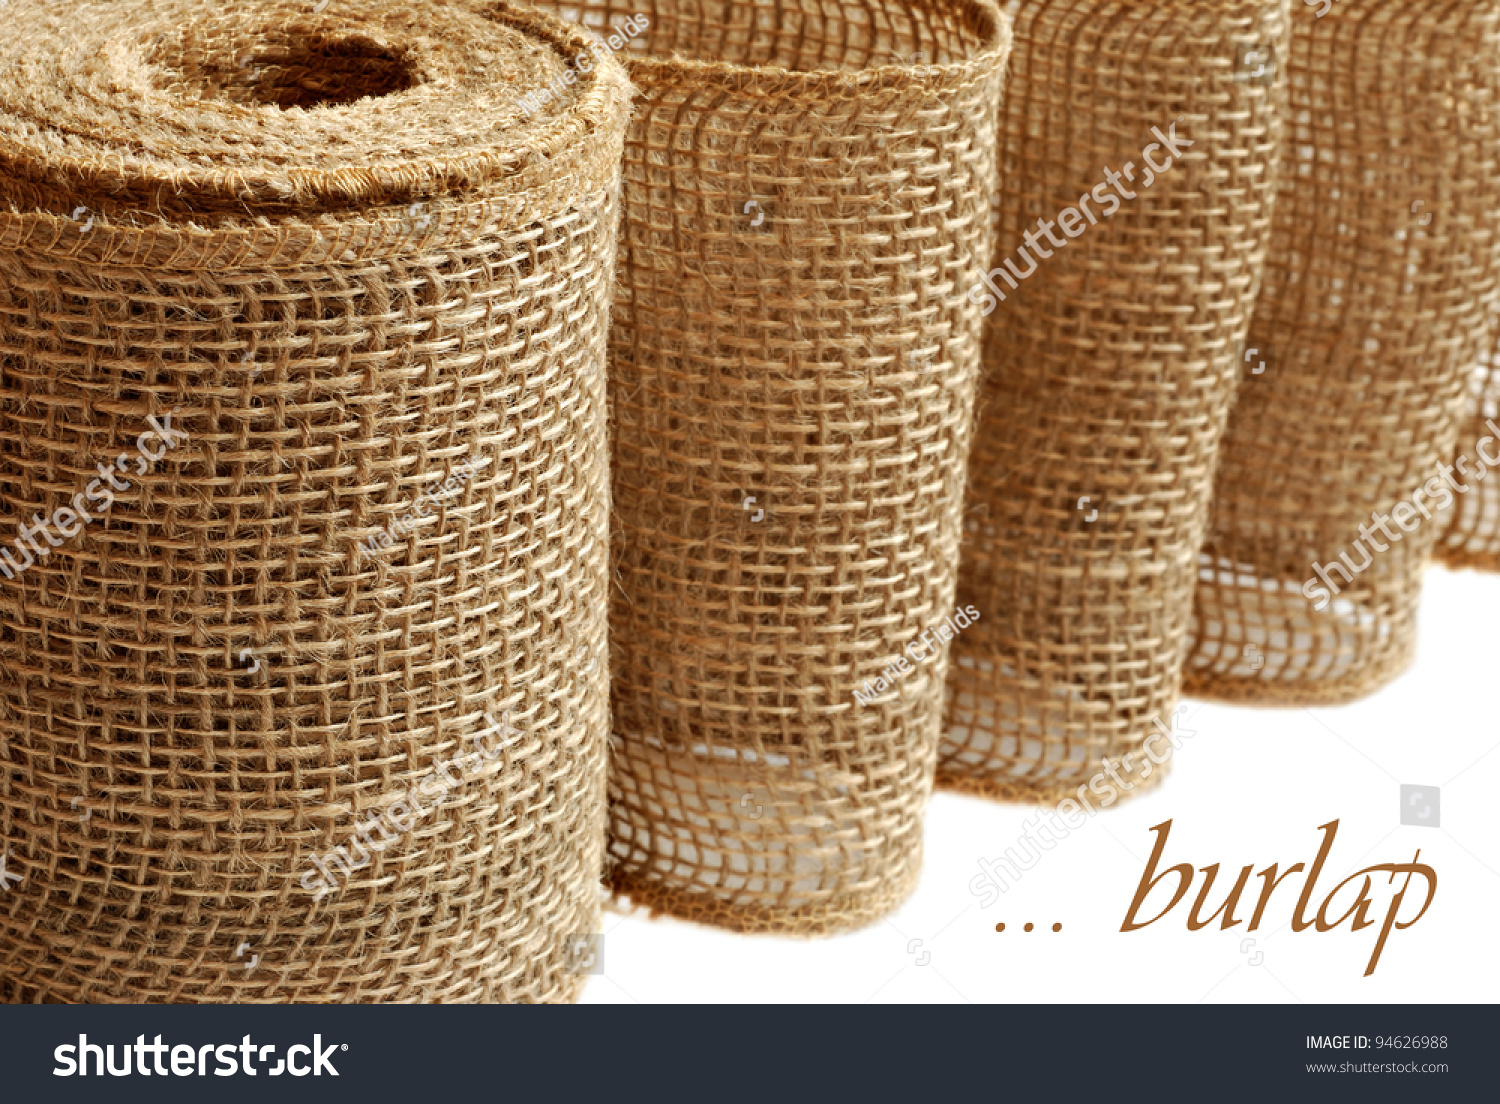 Burlap ribbon or garland used for home decor and craft for Burlap ribbon craft ideas